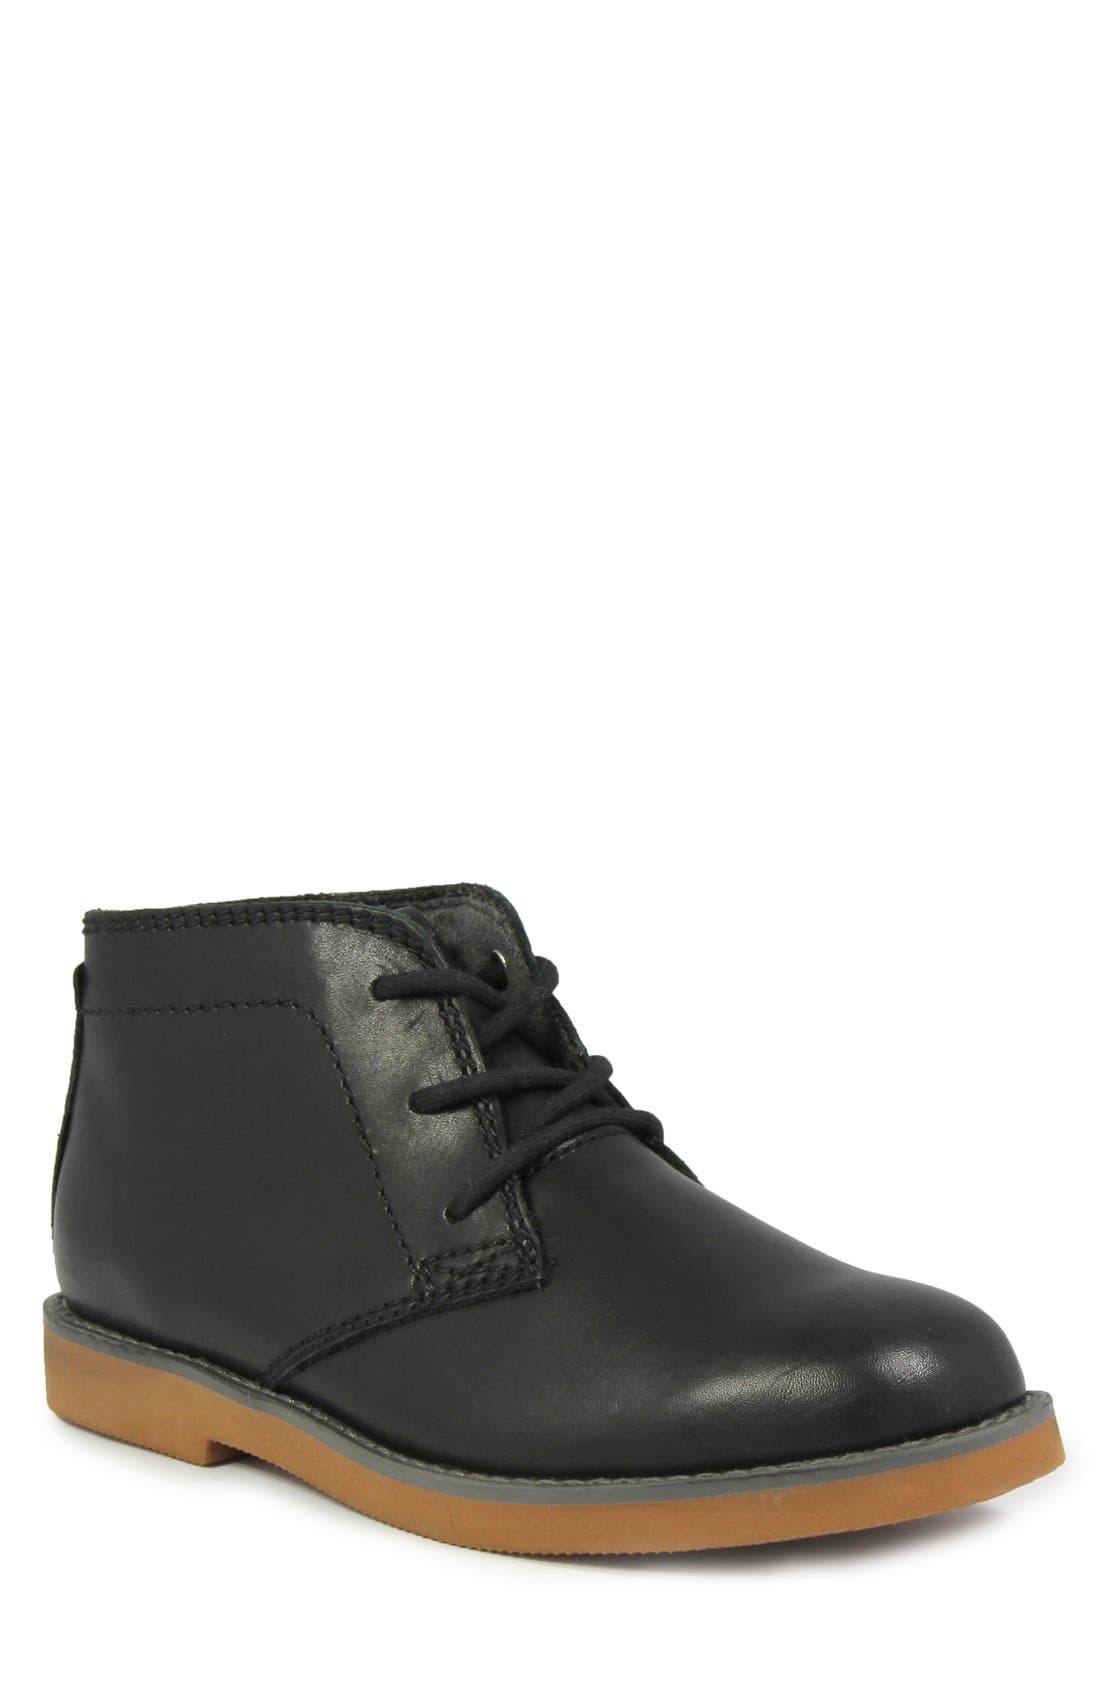 'Bucktown' Chukka Boot,                             Main thumbnail 1, color,